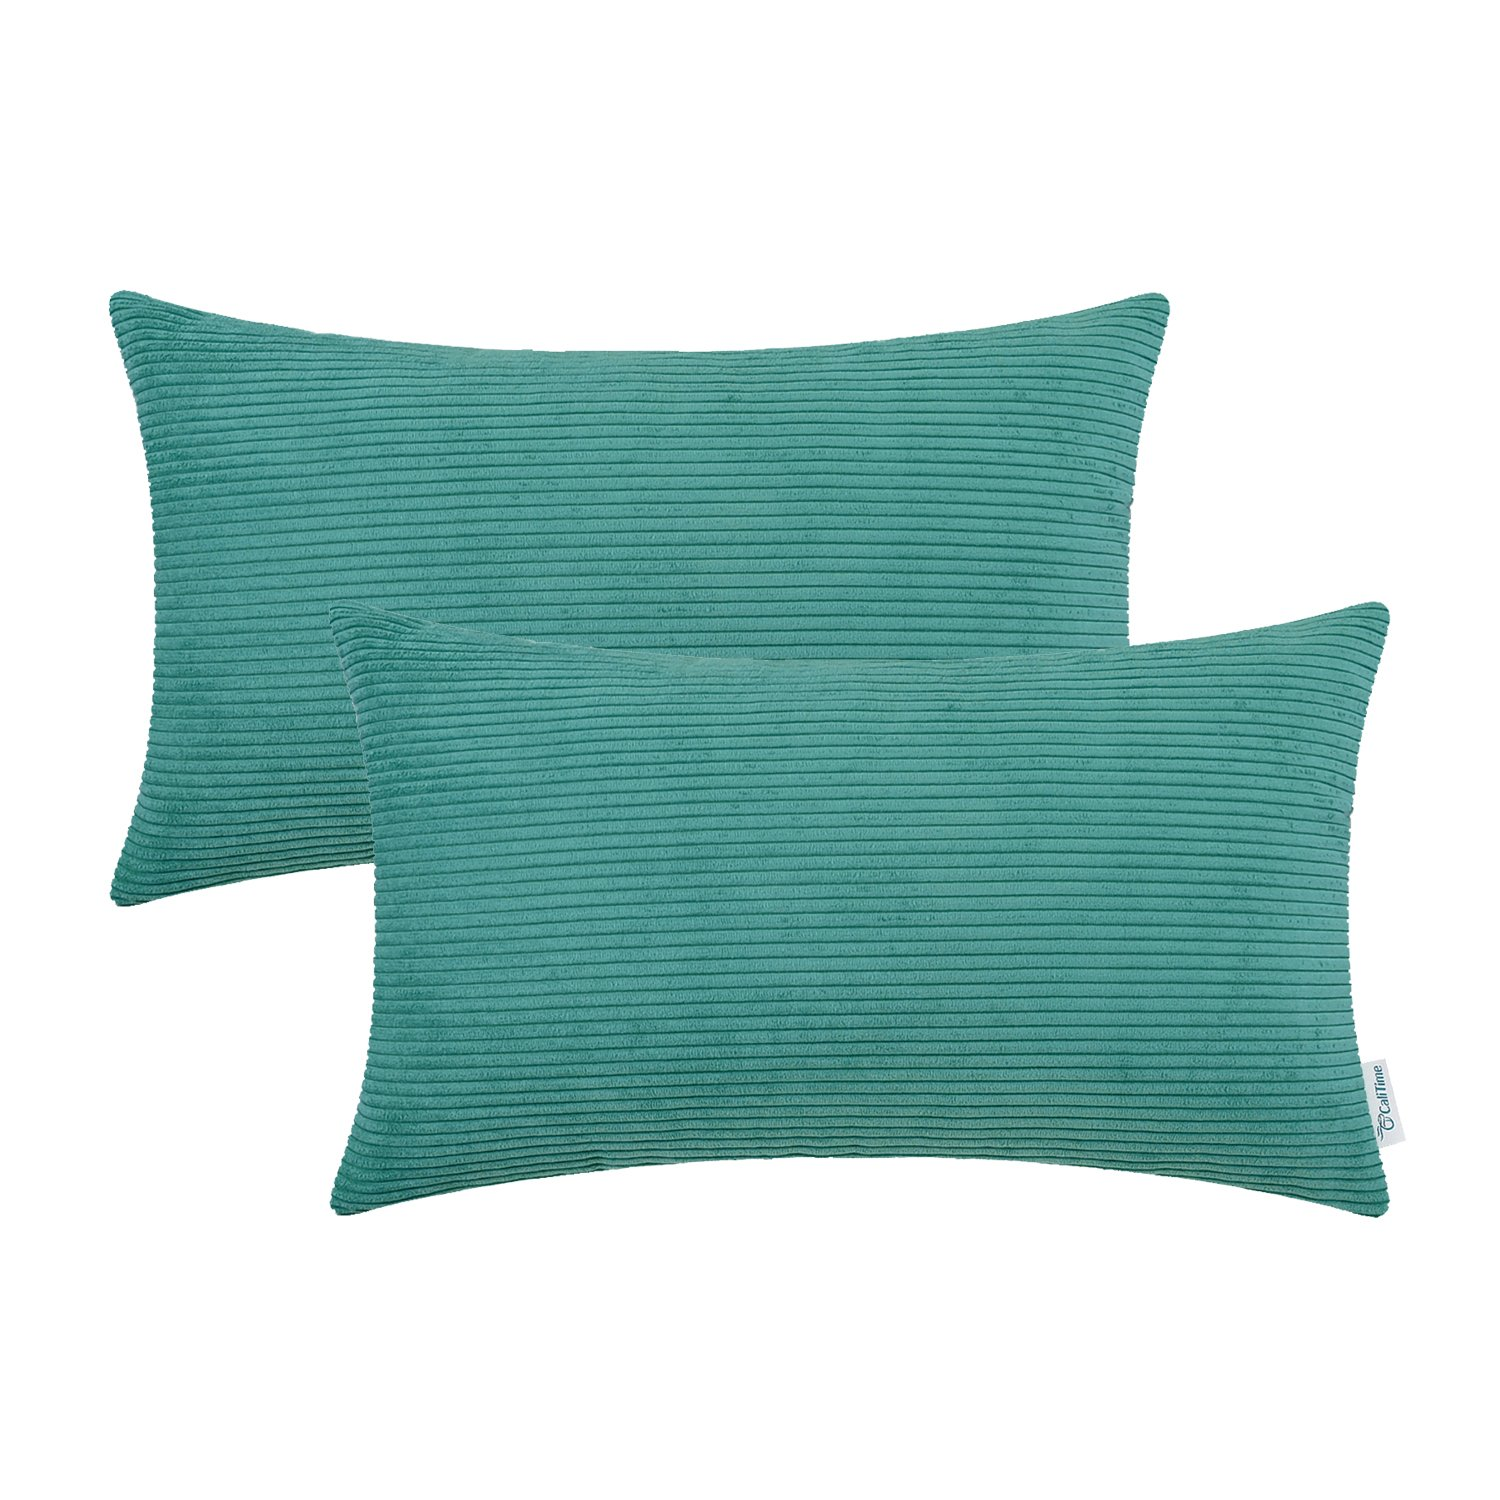 CaliTime Pack of 2 Cozy Bolster Pillow Covers Cases for Couch Bed Sofa Ultra Soft Corduroy Striped Both Sides 12 X 20 Inches Teal